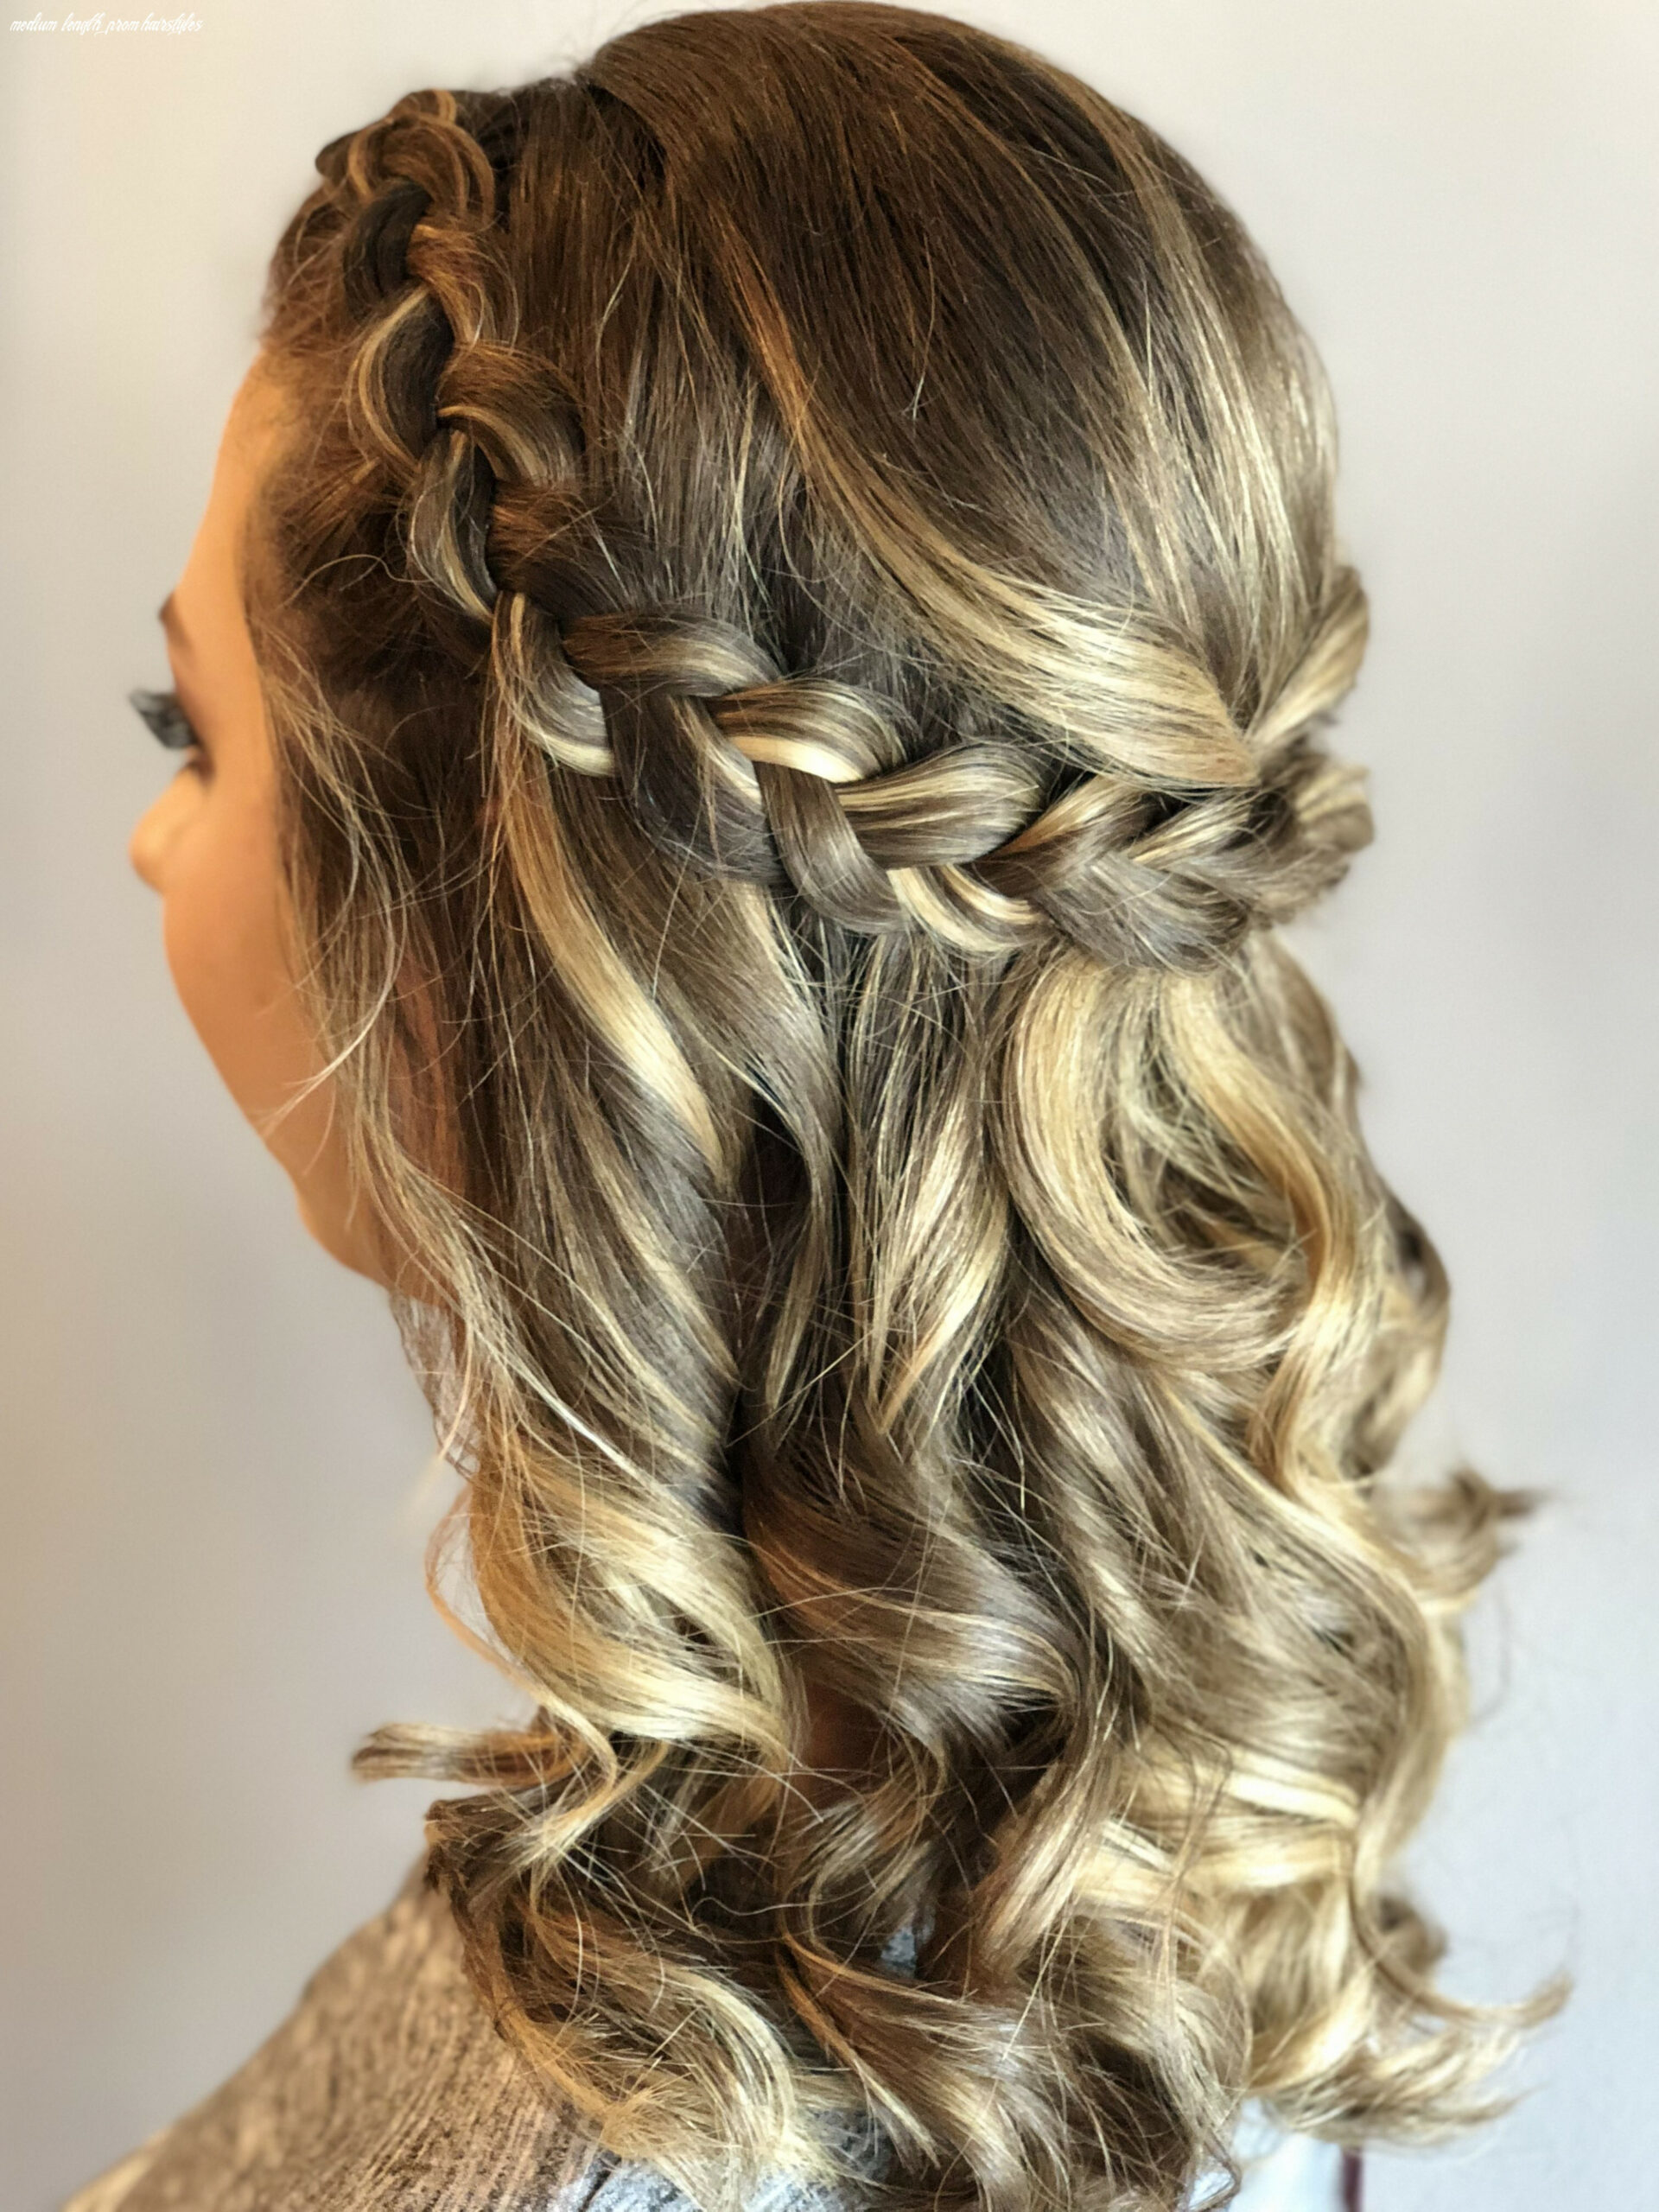 A bella bombshell half up half down with curls, braided prom hair